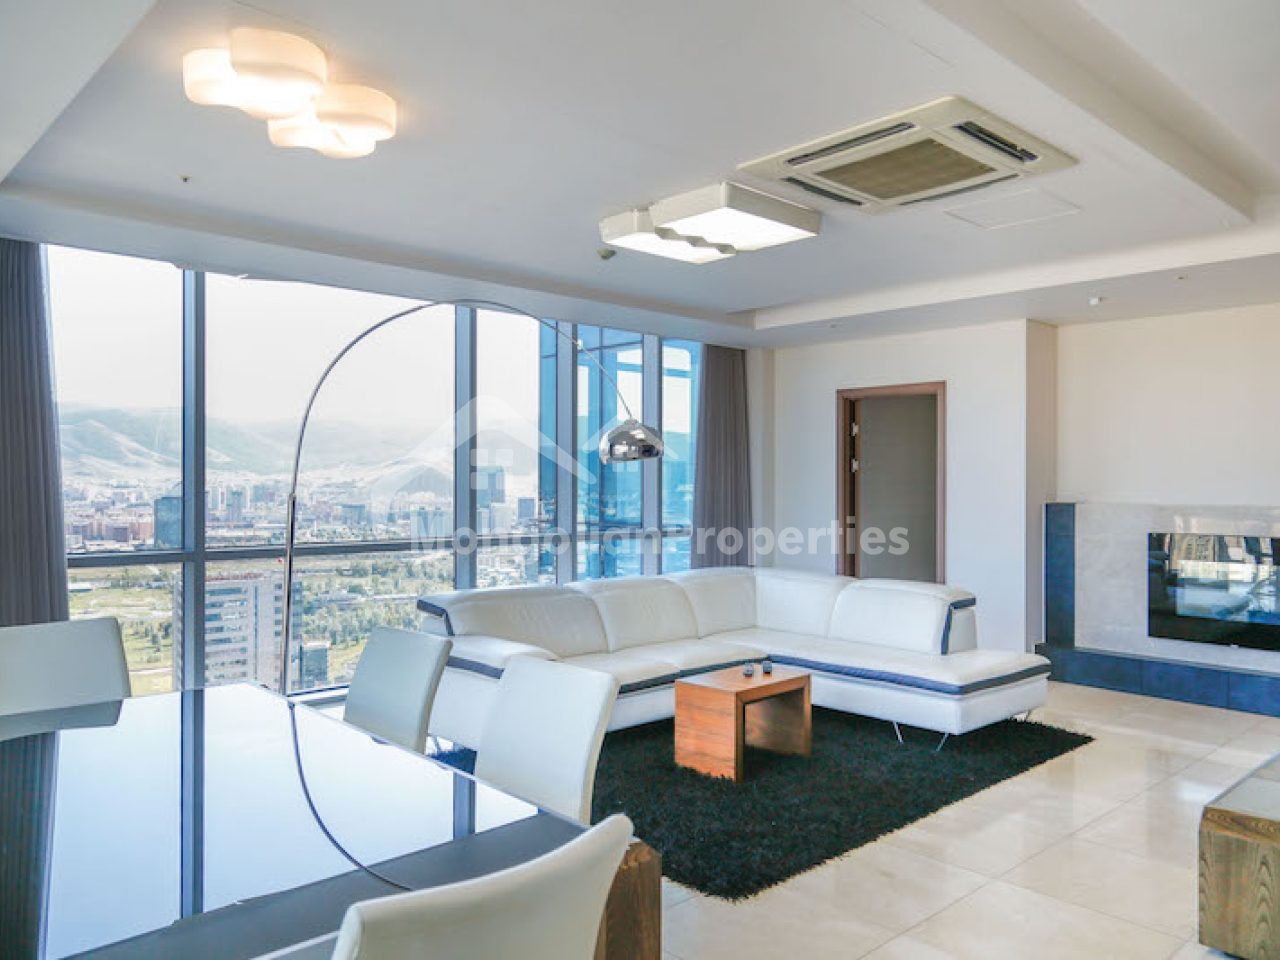 TO LET: BEAUTIFUL APARTMENT IN THE HEART OF THE CITY